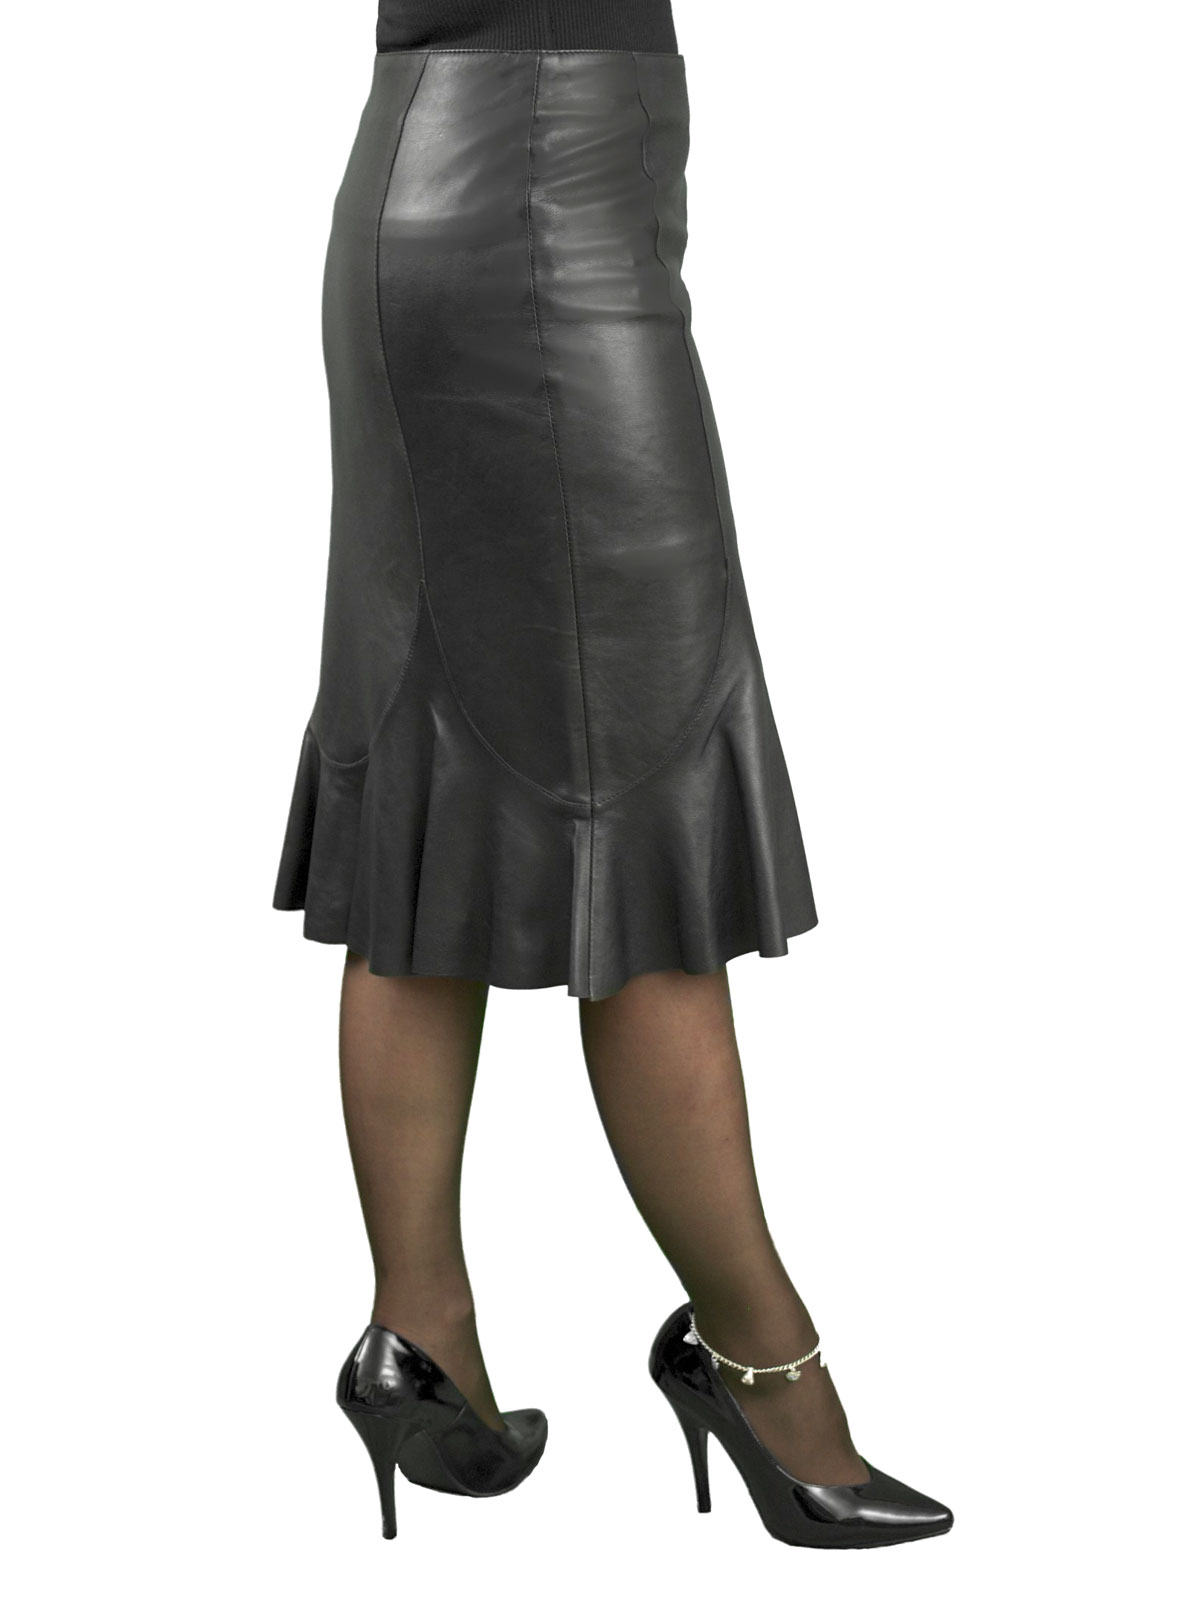 Men Who Love Black Women >> Fishtail Leather Skirt, below knee length - Tout Ensemble